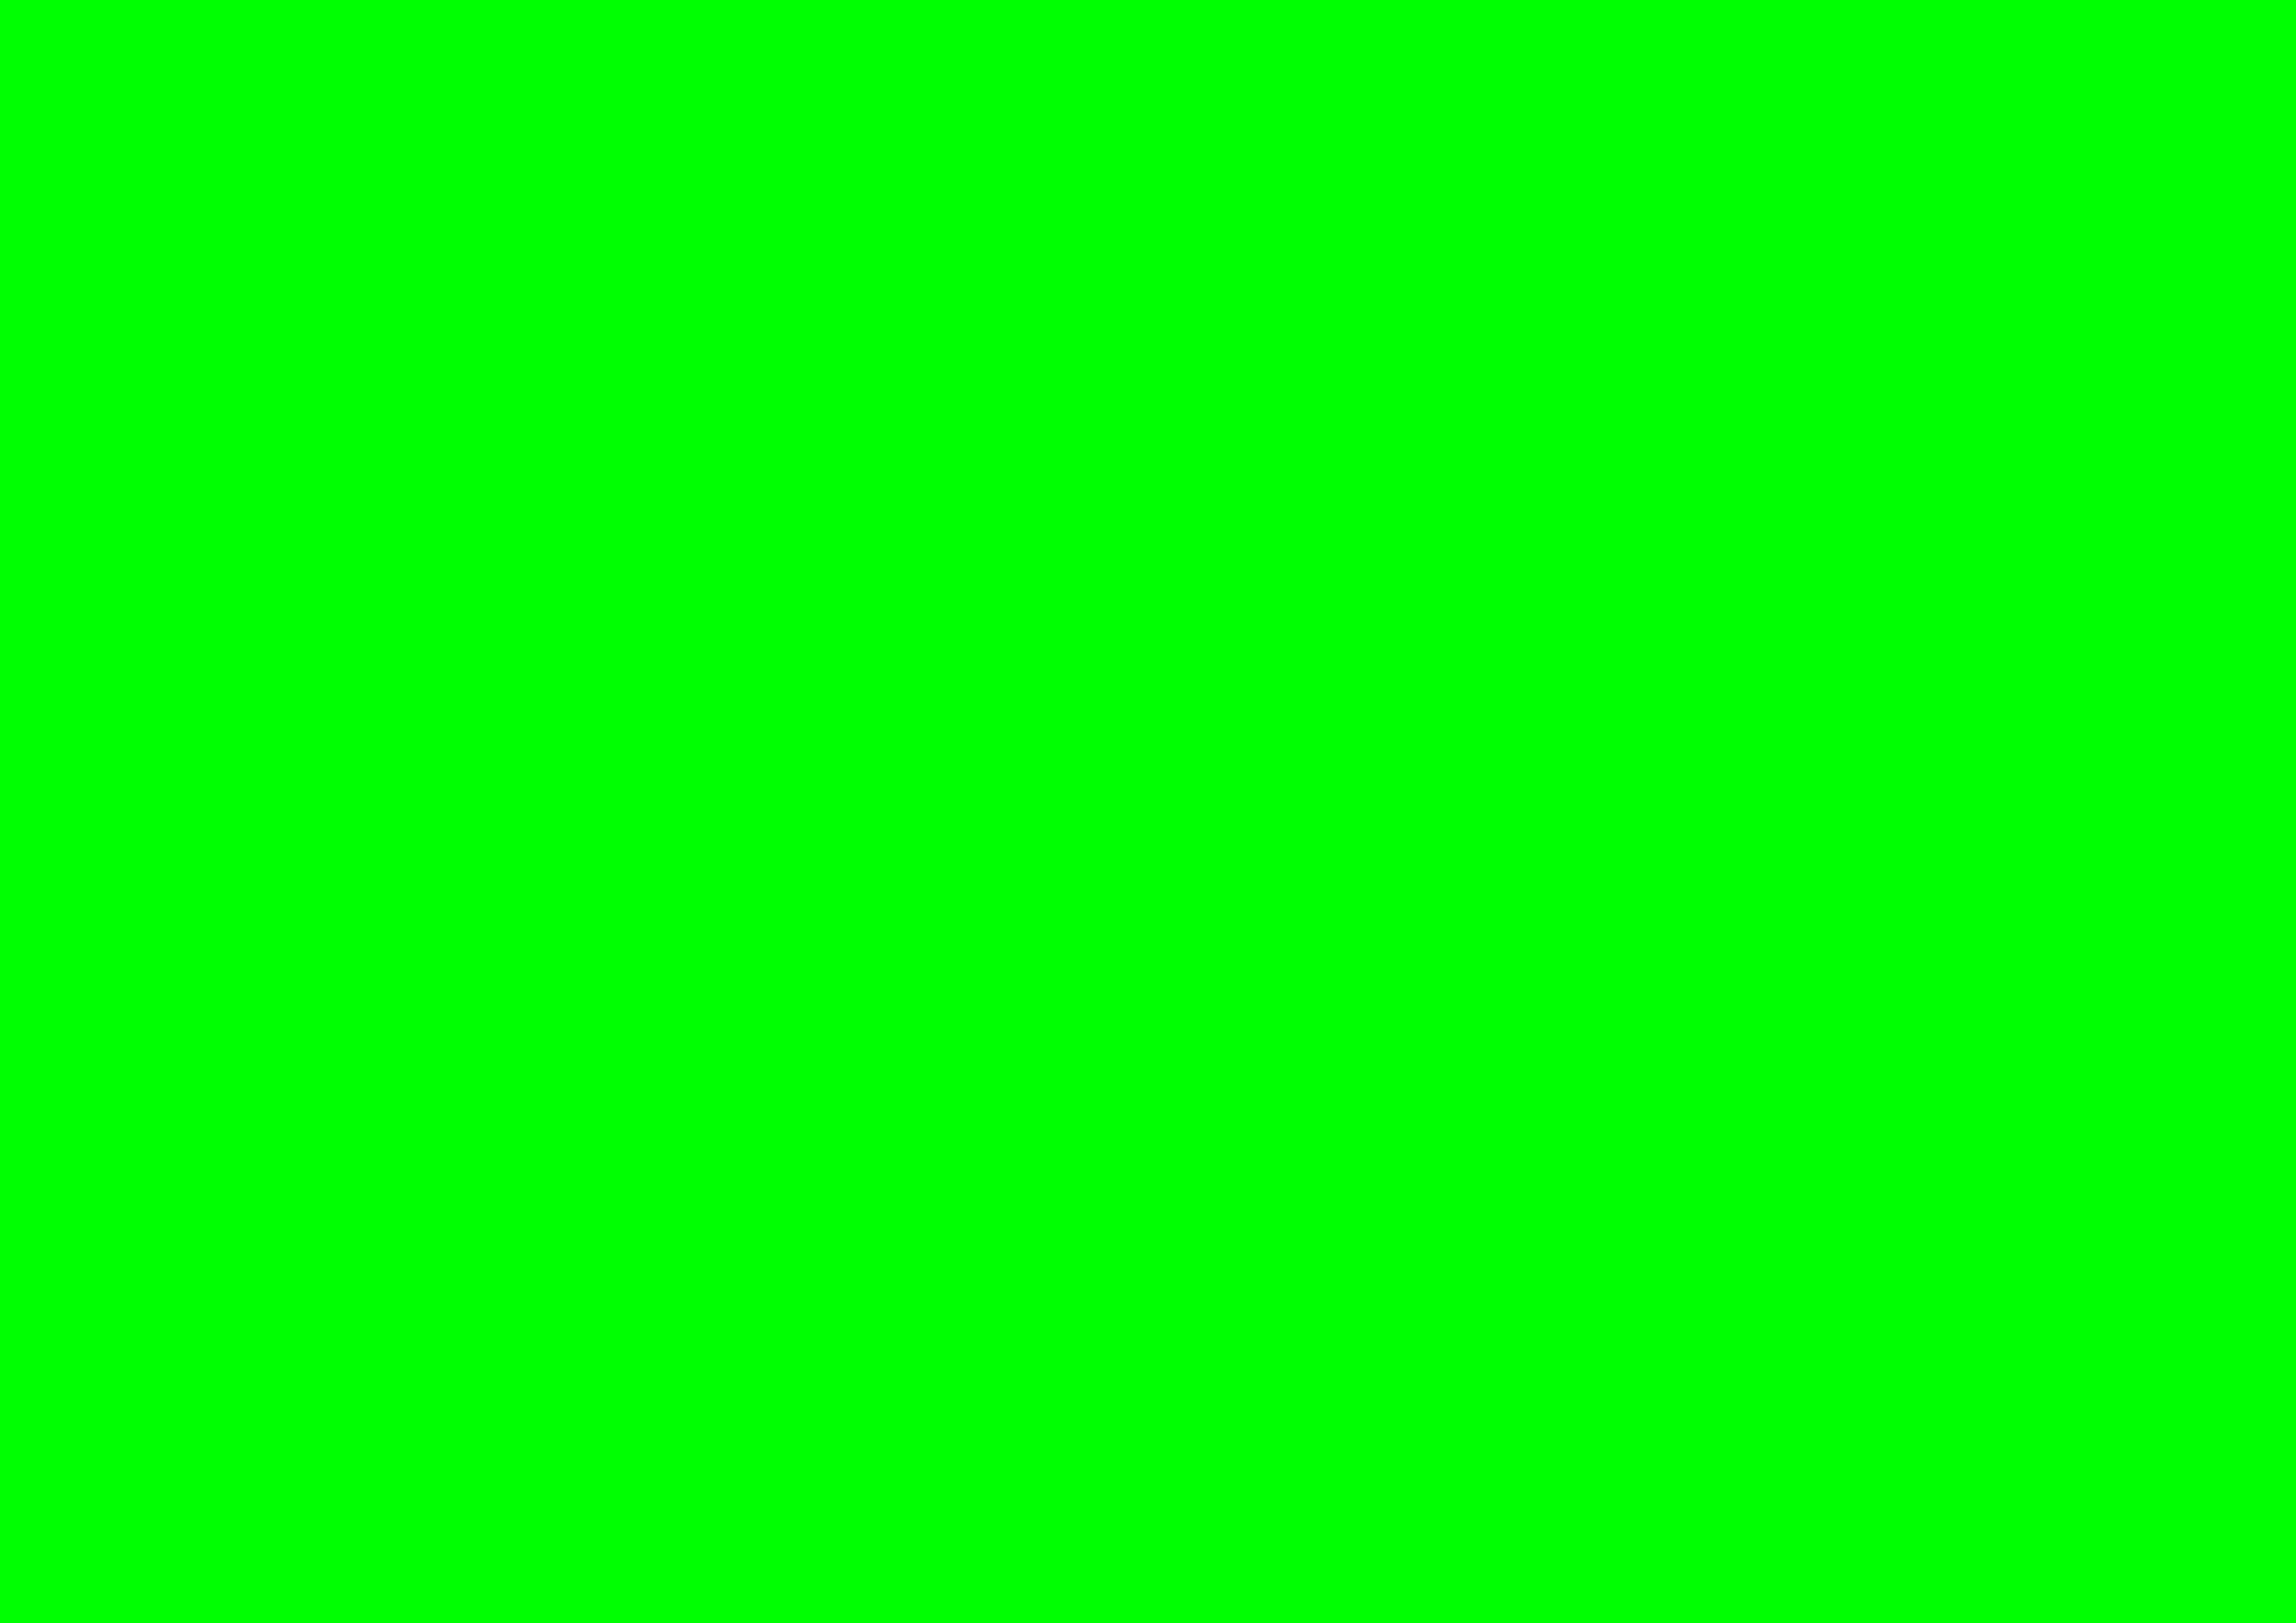 3508x2480 Green X11 Gui Green Solid Color Background